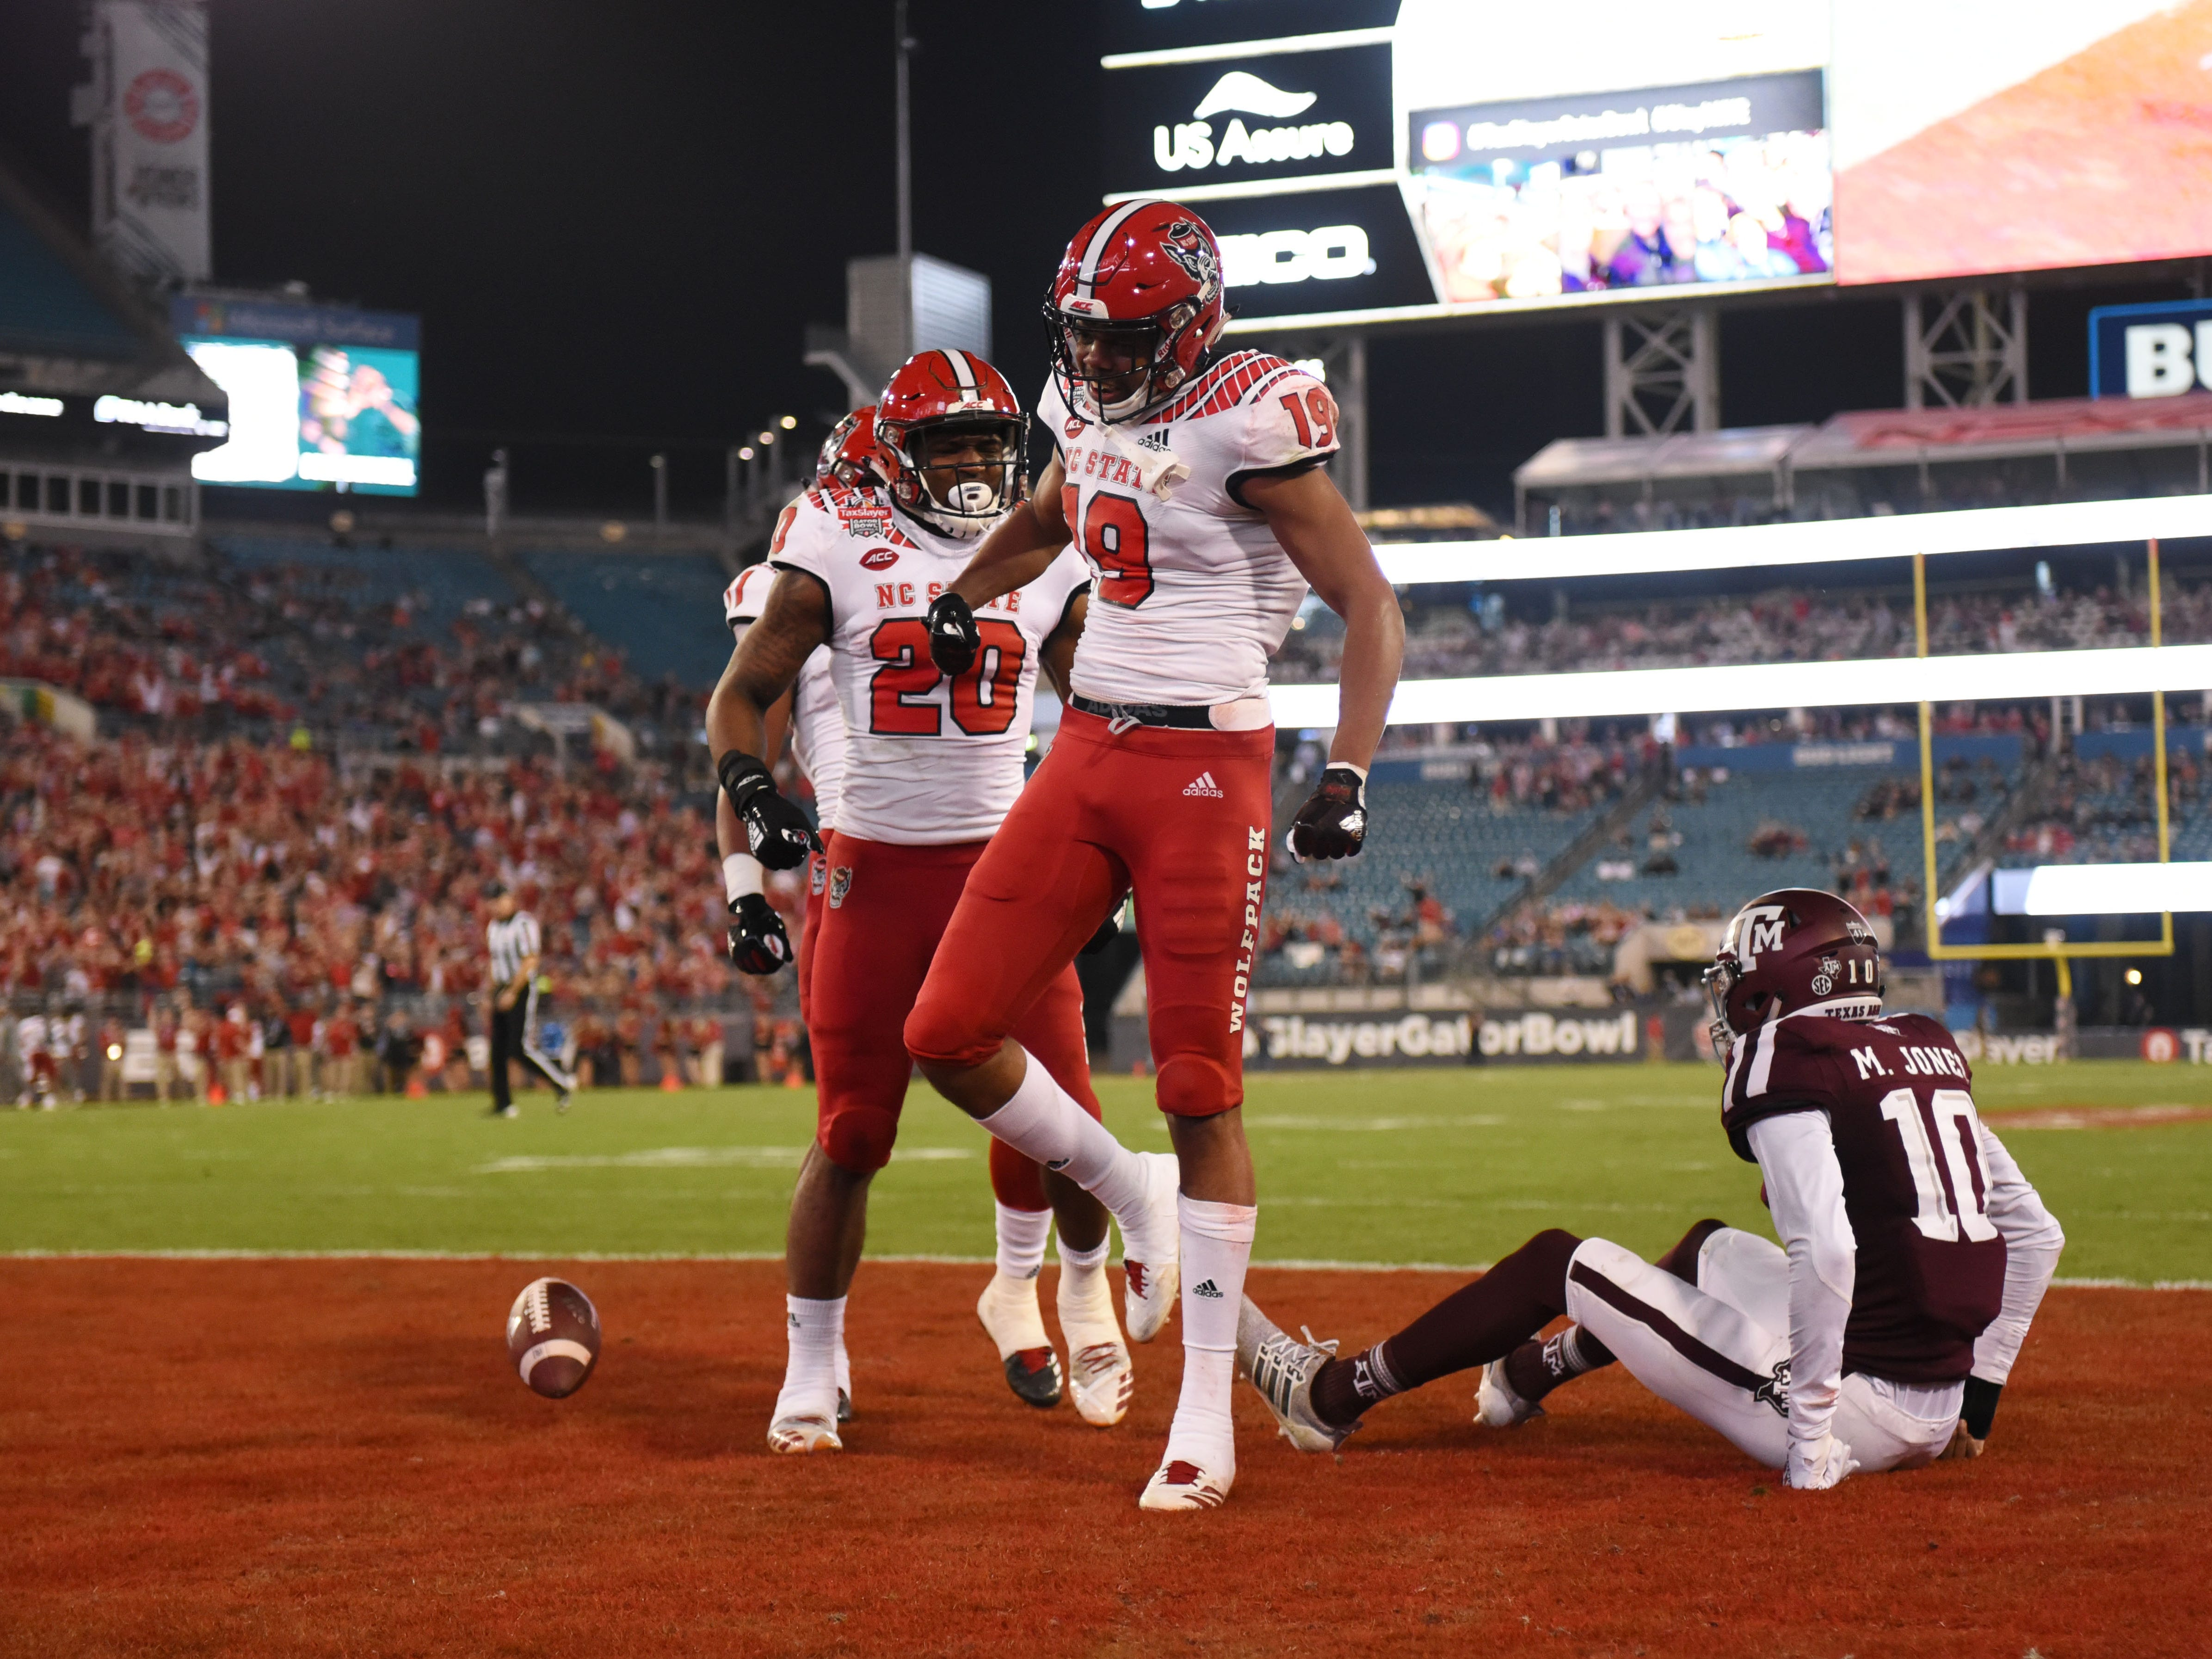 North Carolina State Wolfpack wide receiver C.J. Riley (19) celebrates after scoring a touchdown against the Texas A&M Aggies during the second quarter of the Gator Bowl.